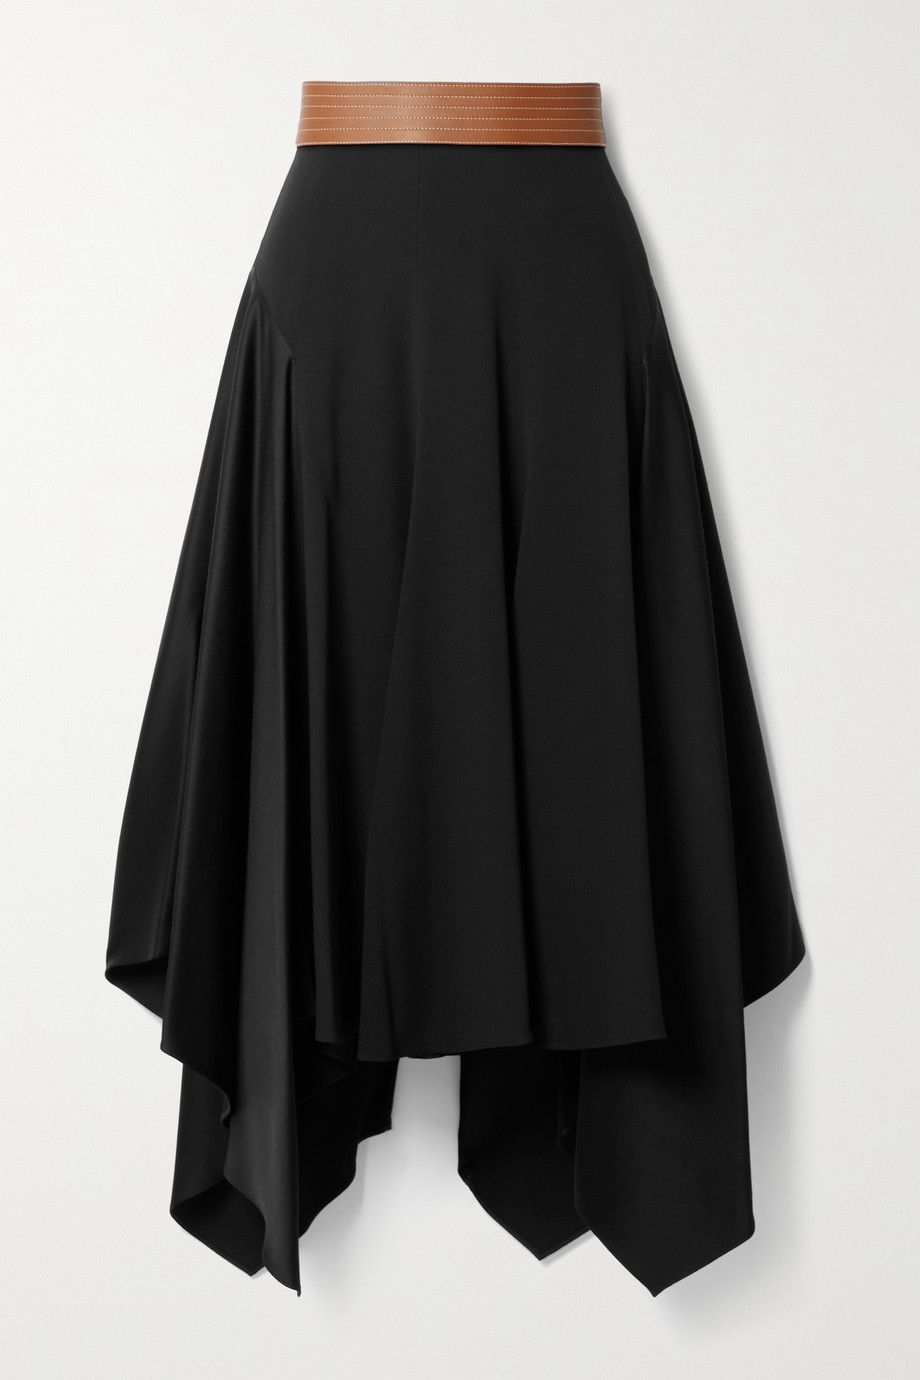 Loewe Asymmetric leather-trimmed crepe and satin midi skirt